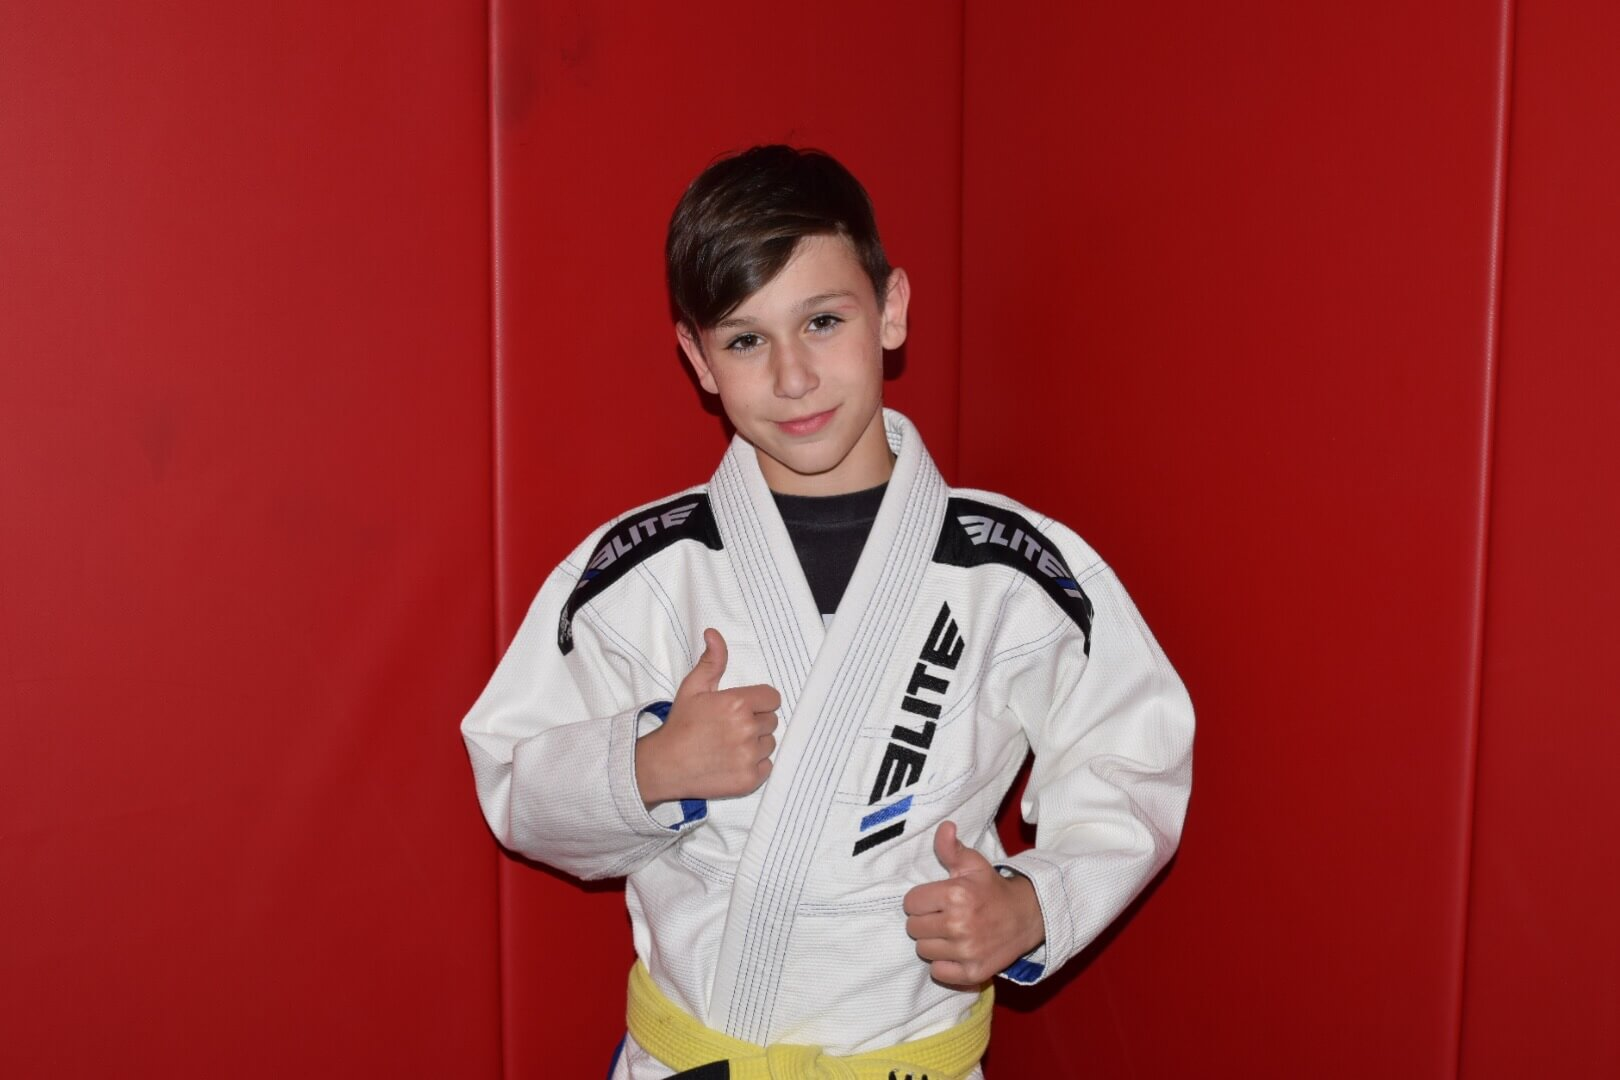 Elite Sports Team Elite Bjj Fighter Maximus MacDougall  Image3